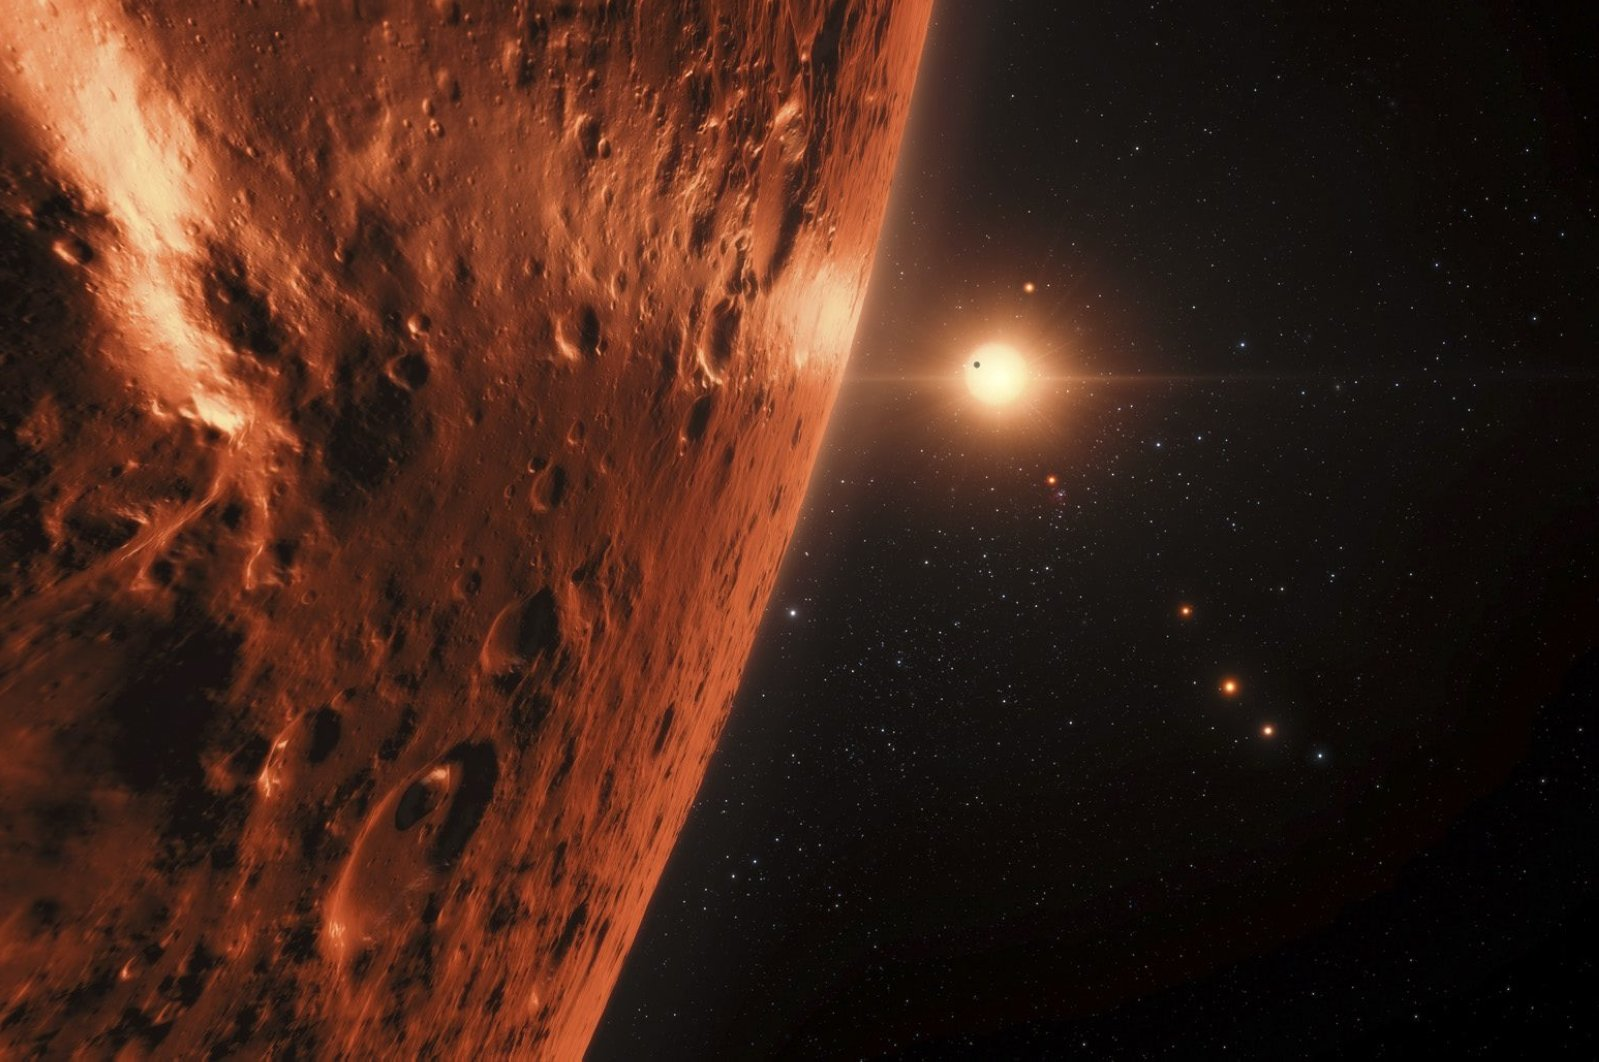 This handout artistís impression released by the European Southern Observatory on February 22, 2017 shows the view just above the surface of one of the planets in the TRAPPIST-1 system. (AFP Photo)